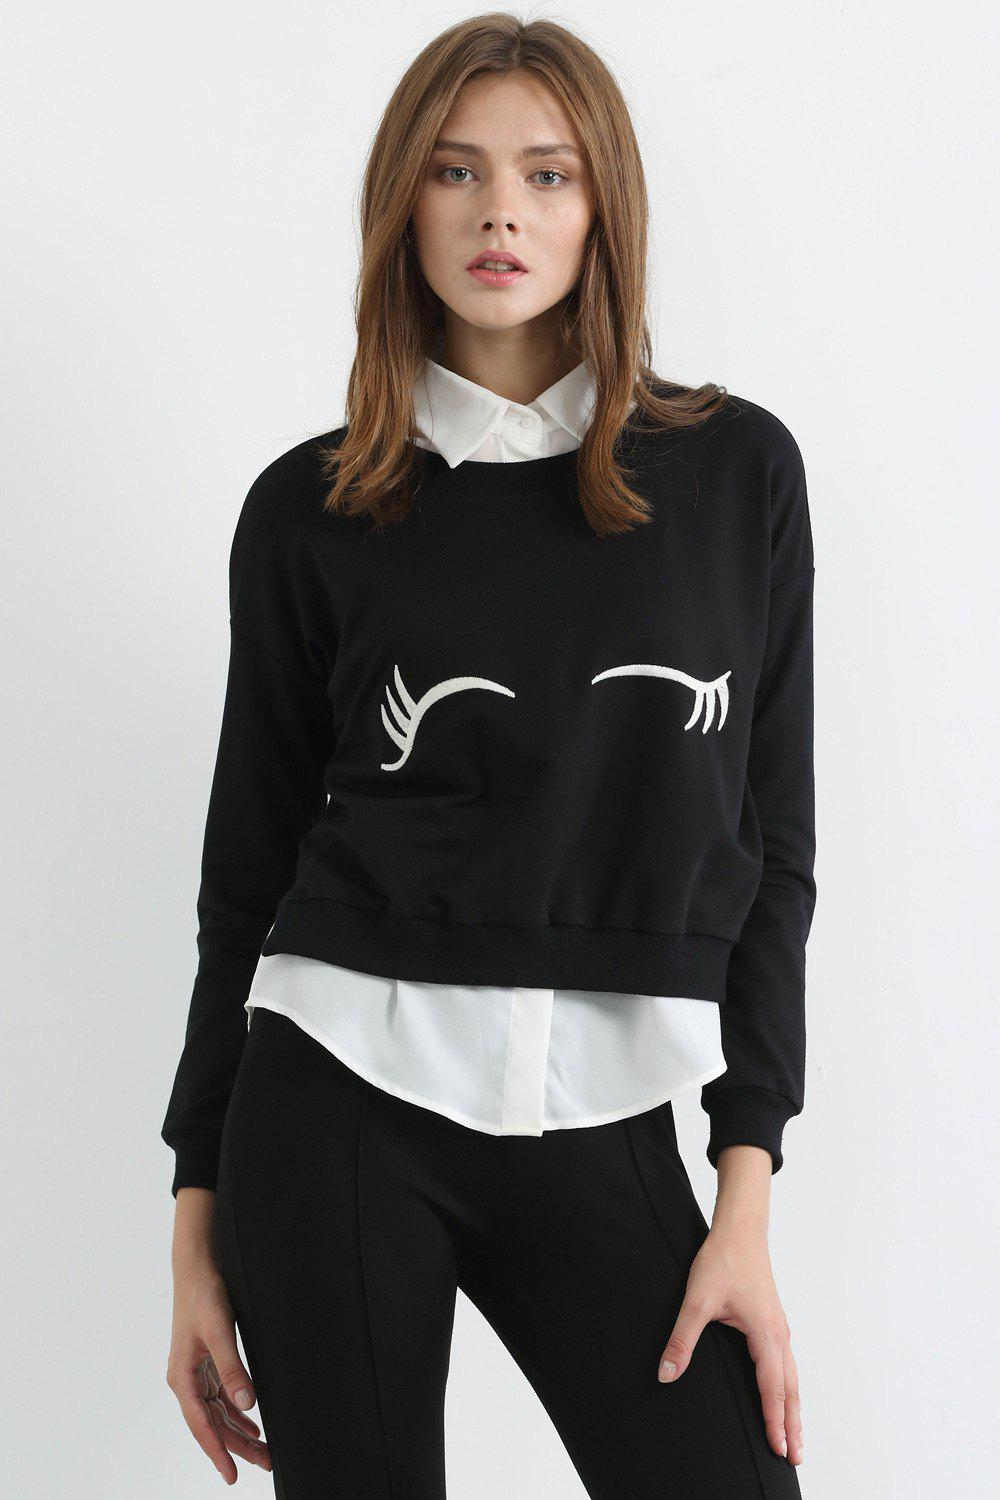 Fashionable Jewel Neck White Eyelash Print Long Sleeve Sweatshirt For Women - BLACK XL